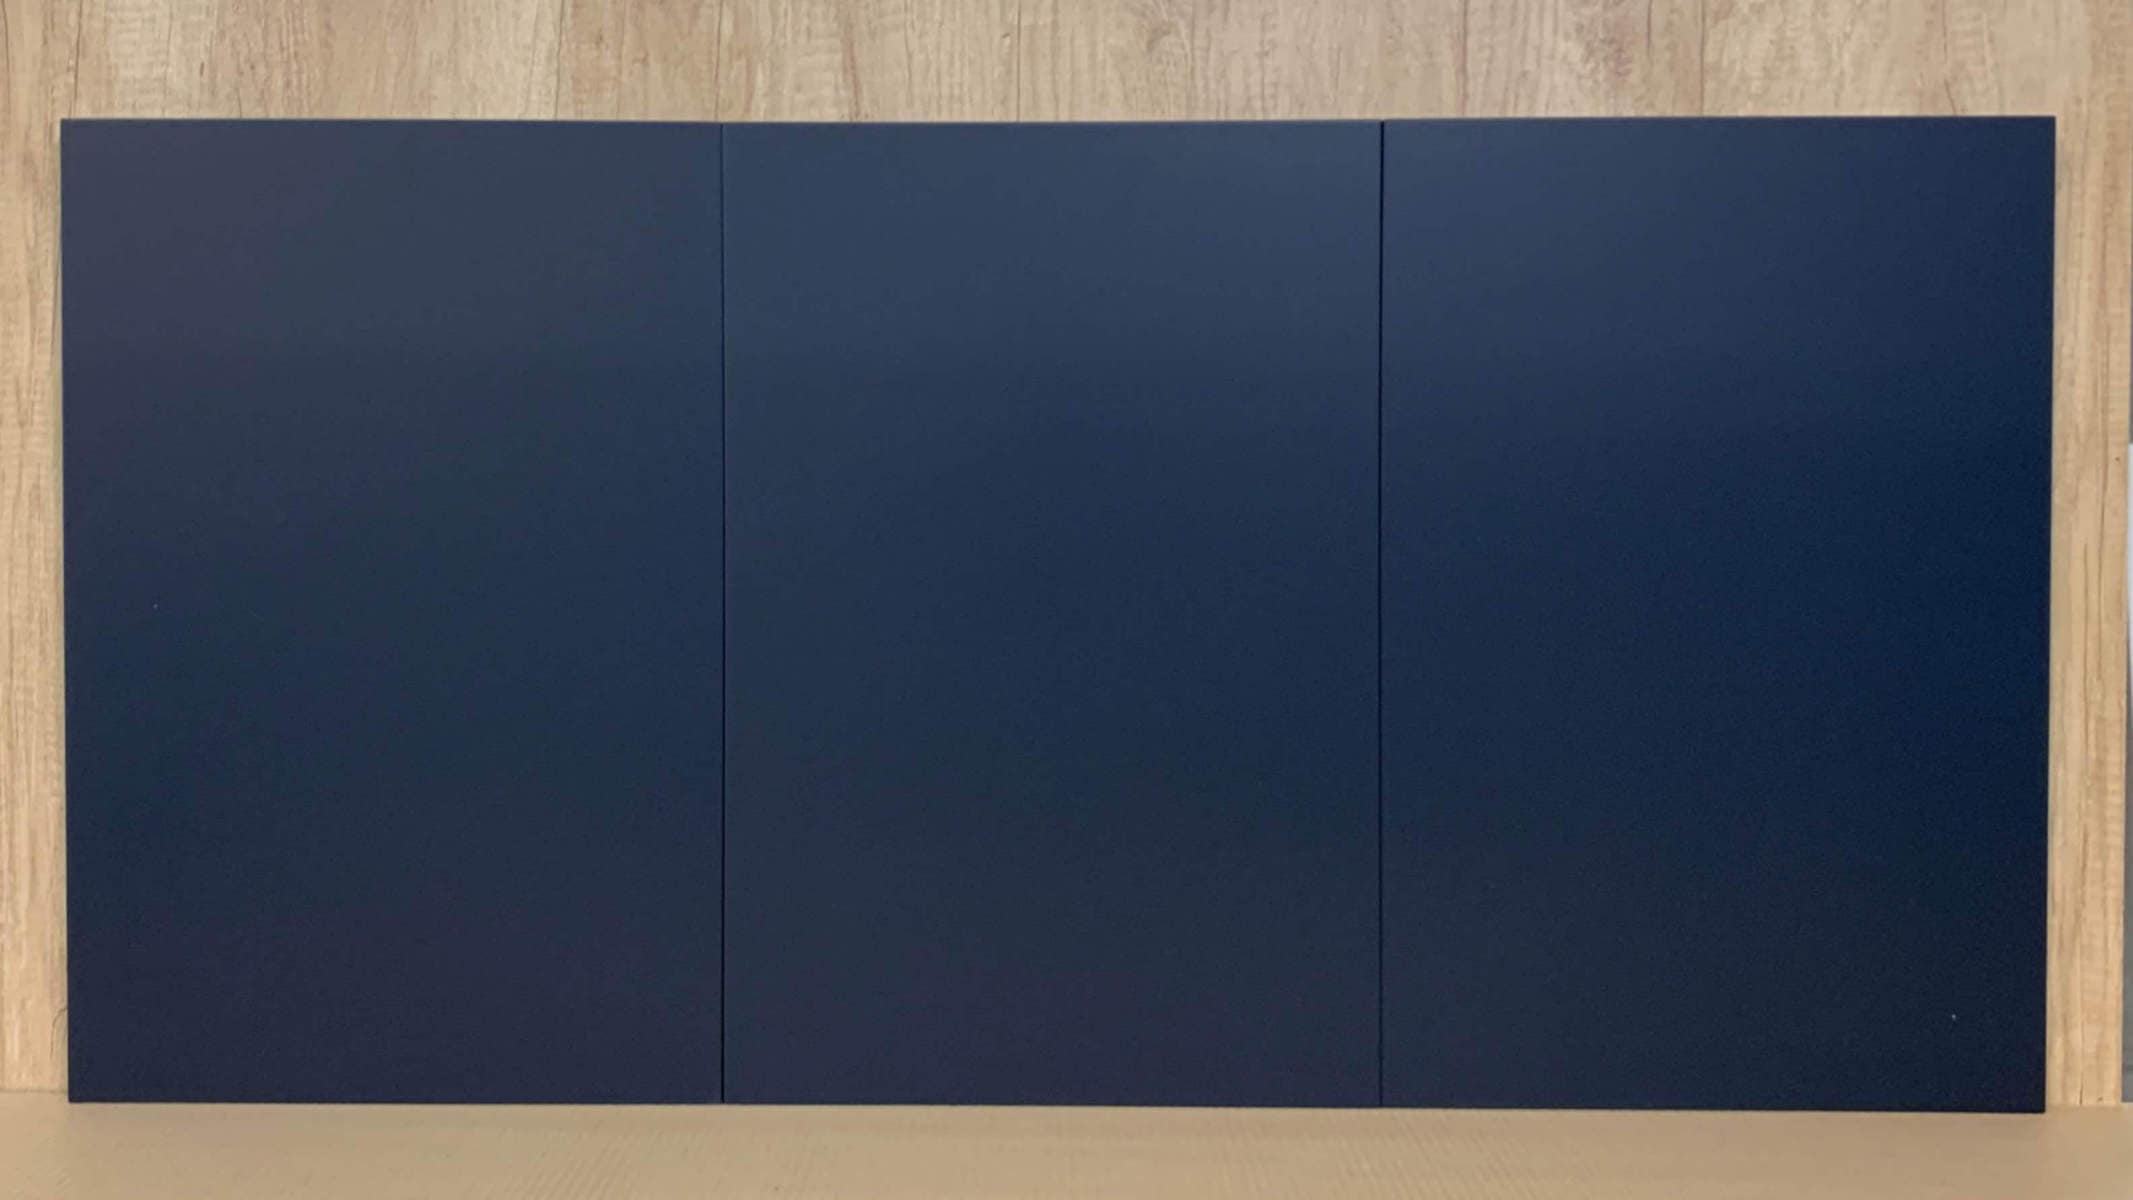 New kitchen cabinet doors for IKEA Faktum & Metod in the lovely Indigo Blue colour